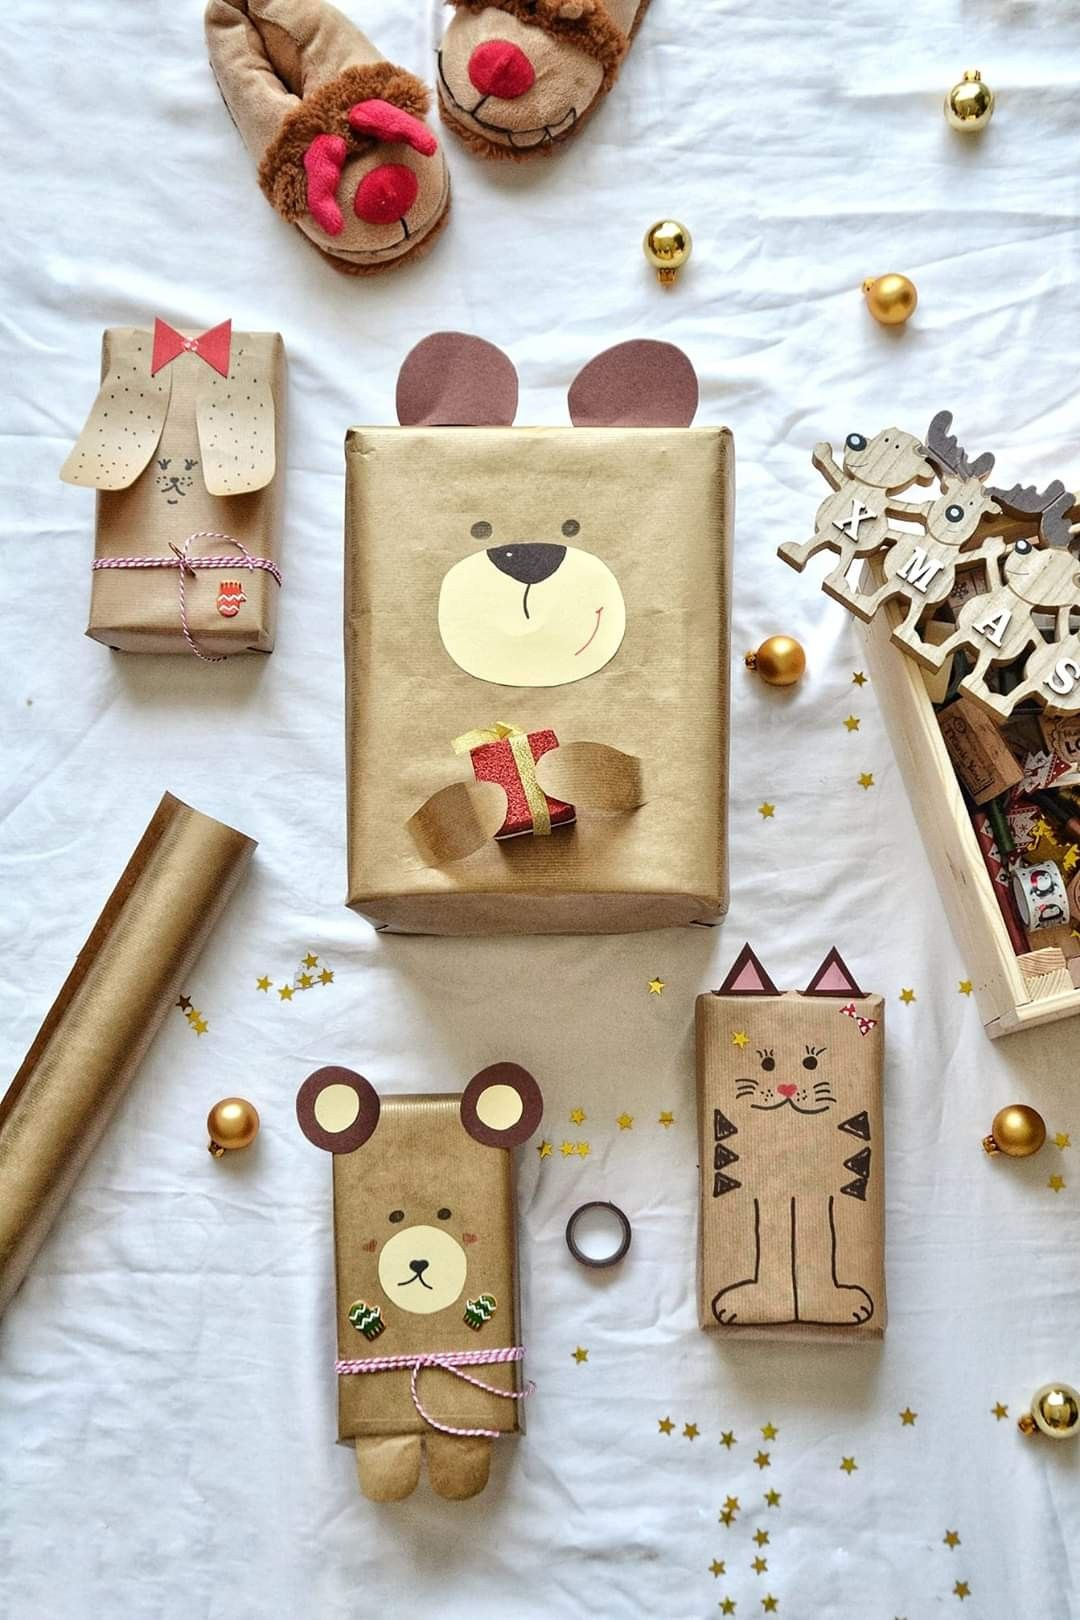 Pin by Blessed Be on Deco wrapping | Gifts, Creative gift